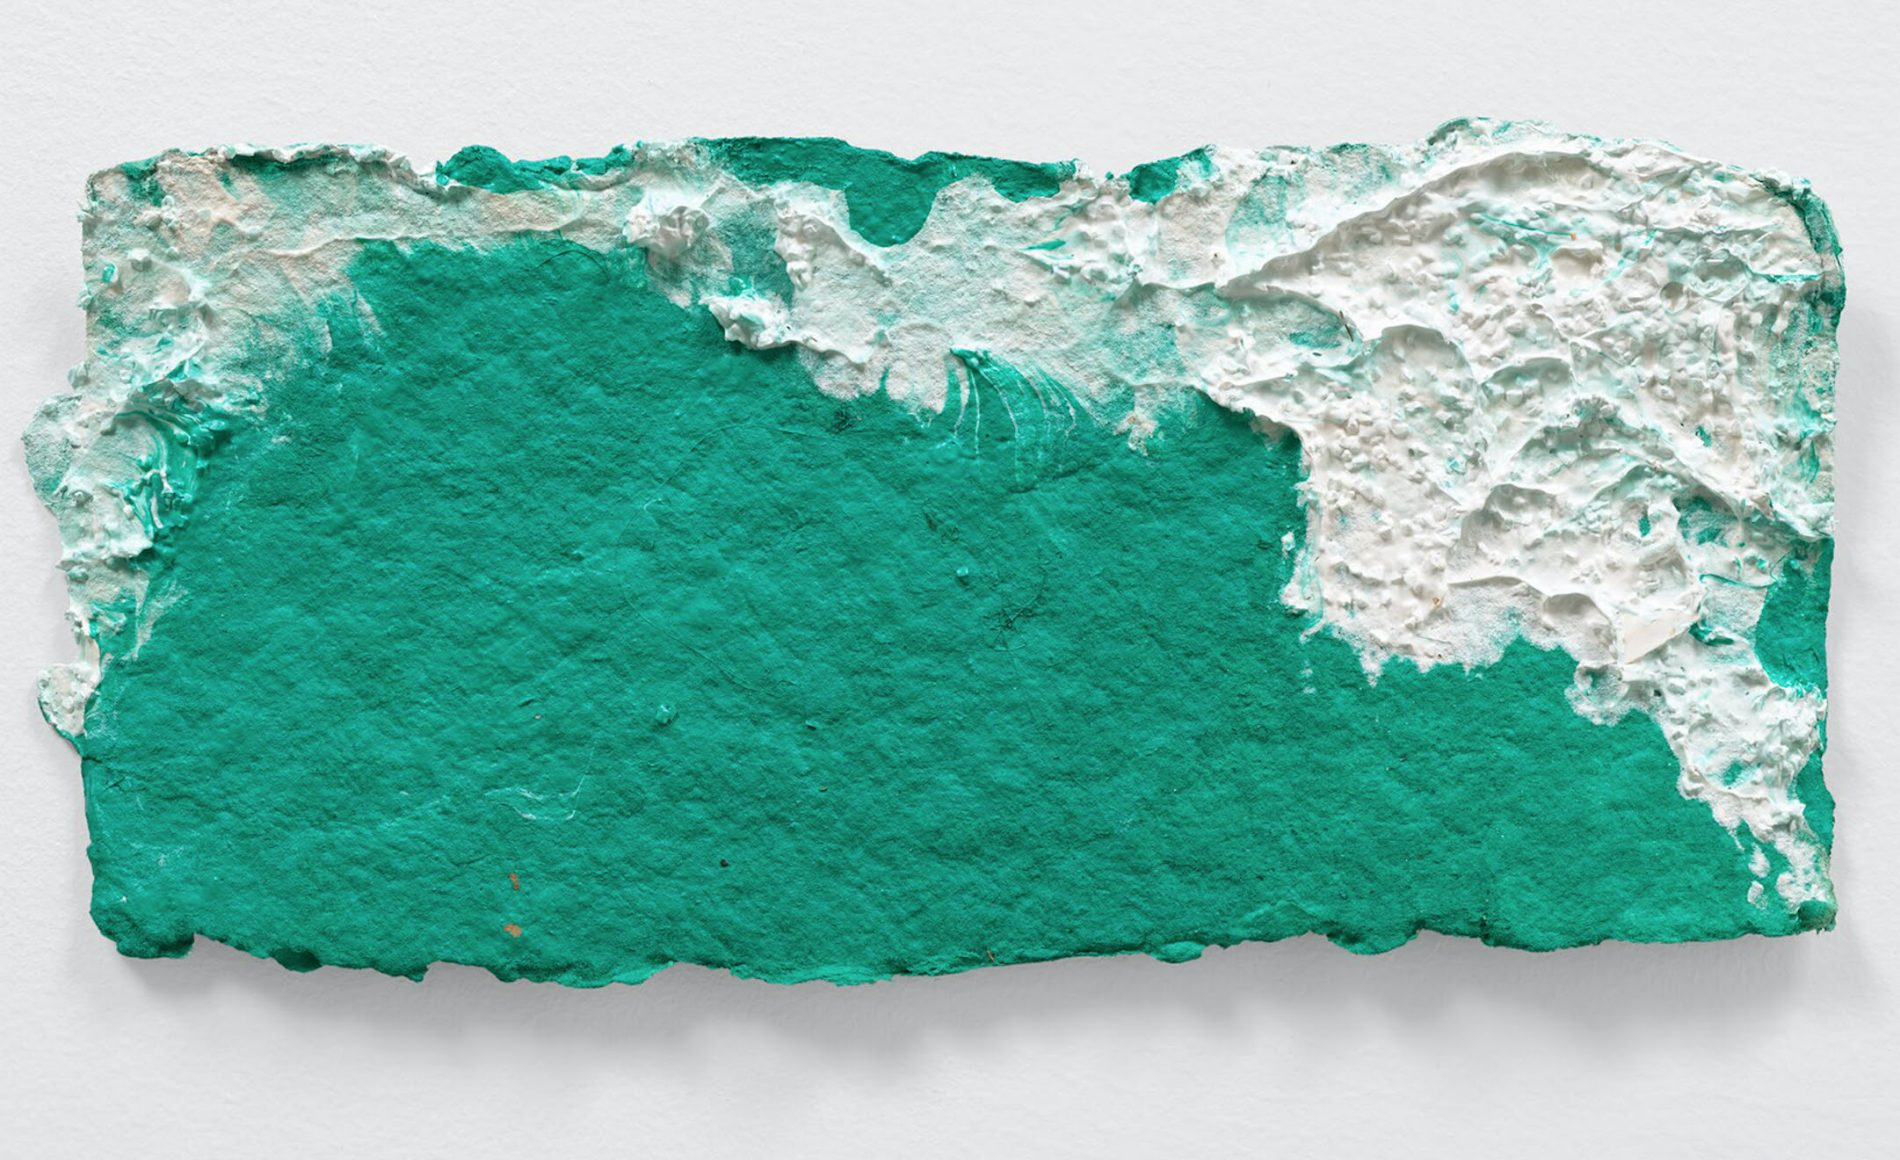 Mary Heilmann, 'Mighty Right,' 2020, acrylic on paper.